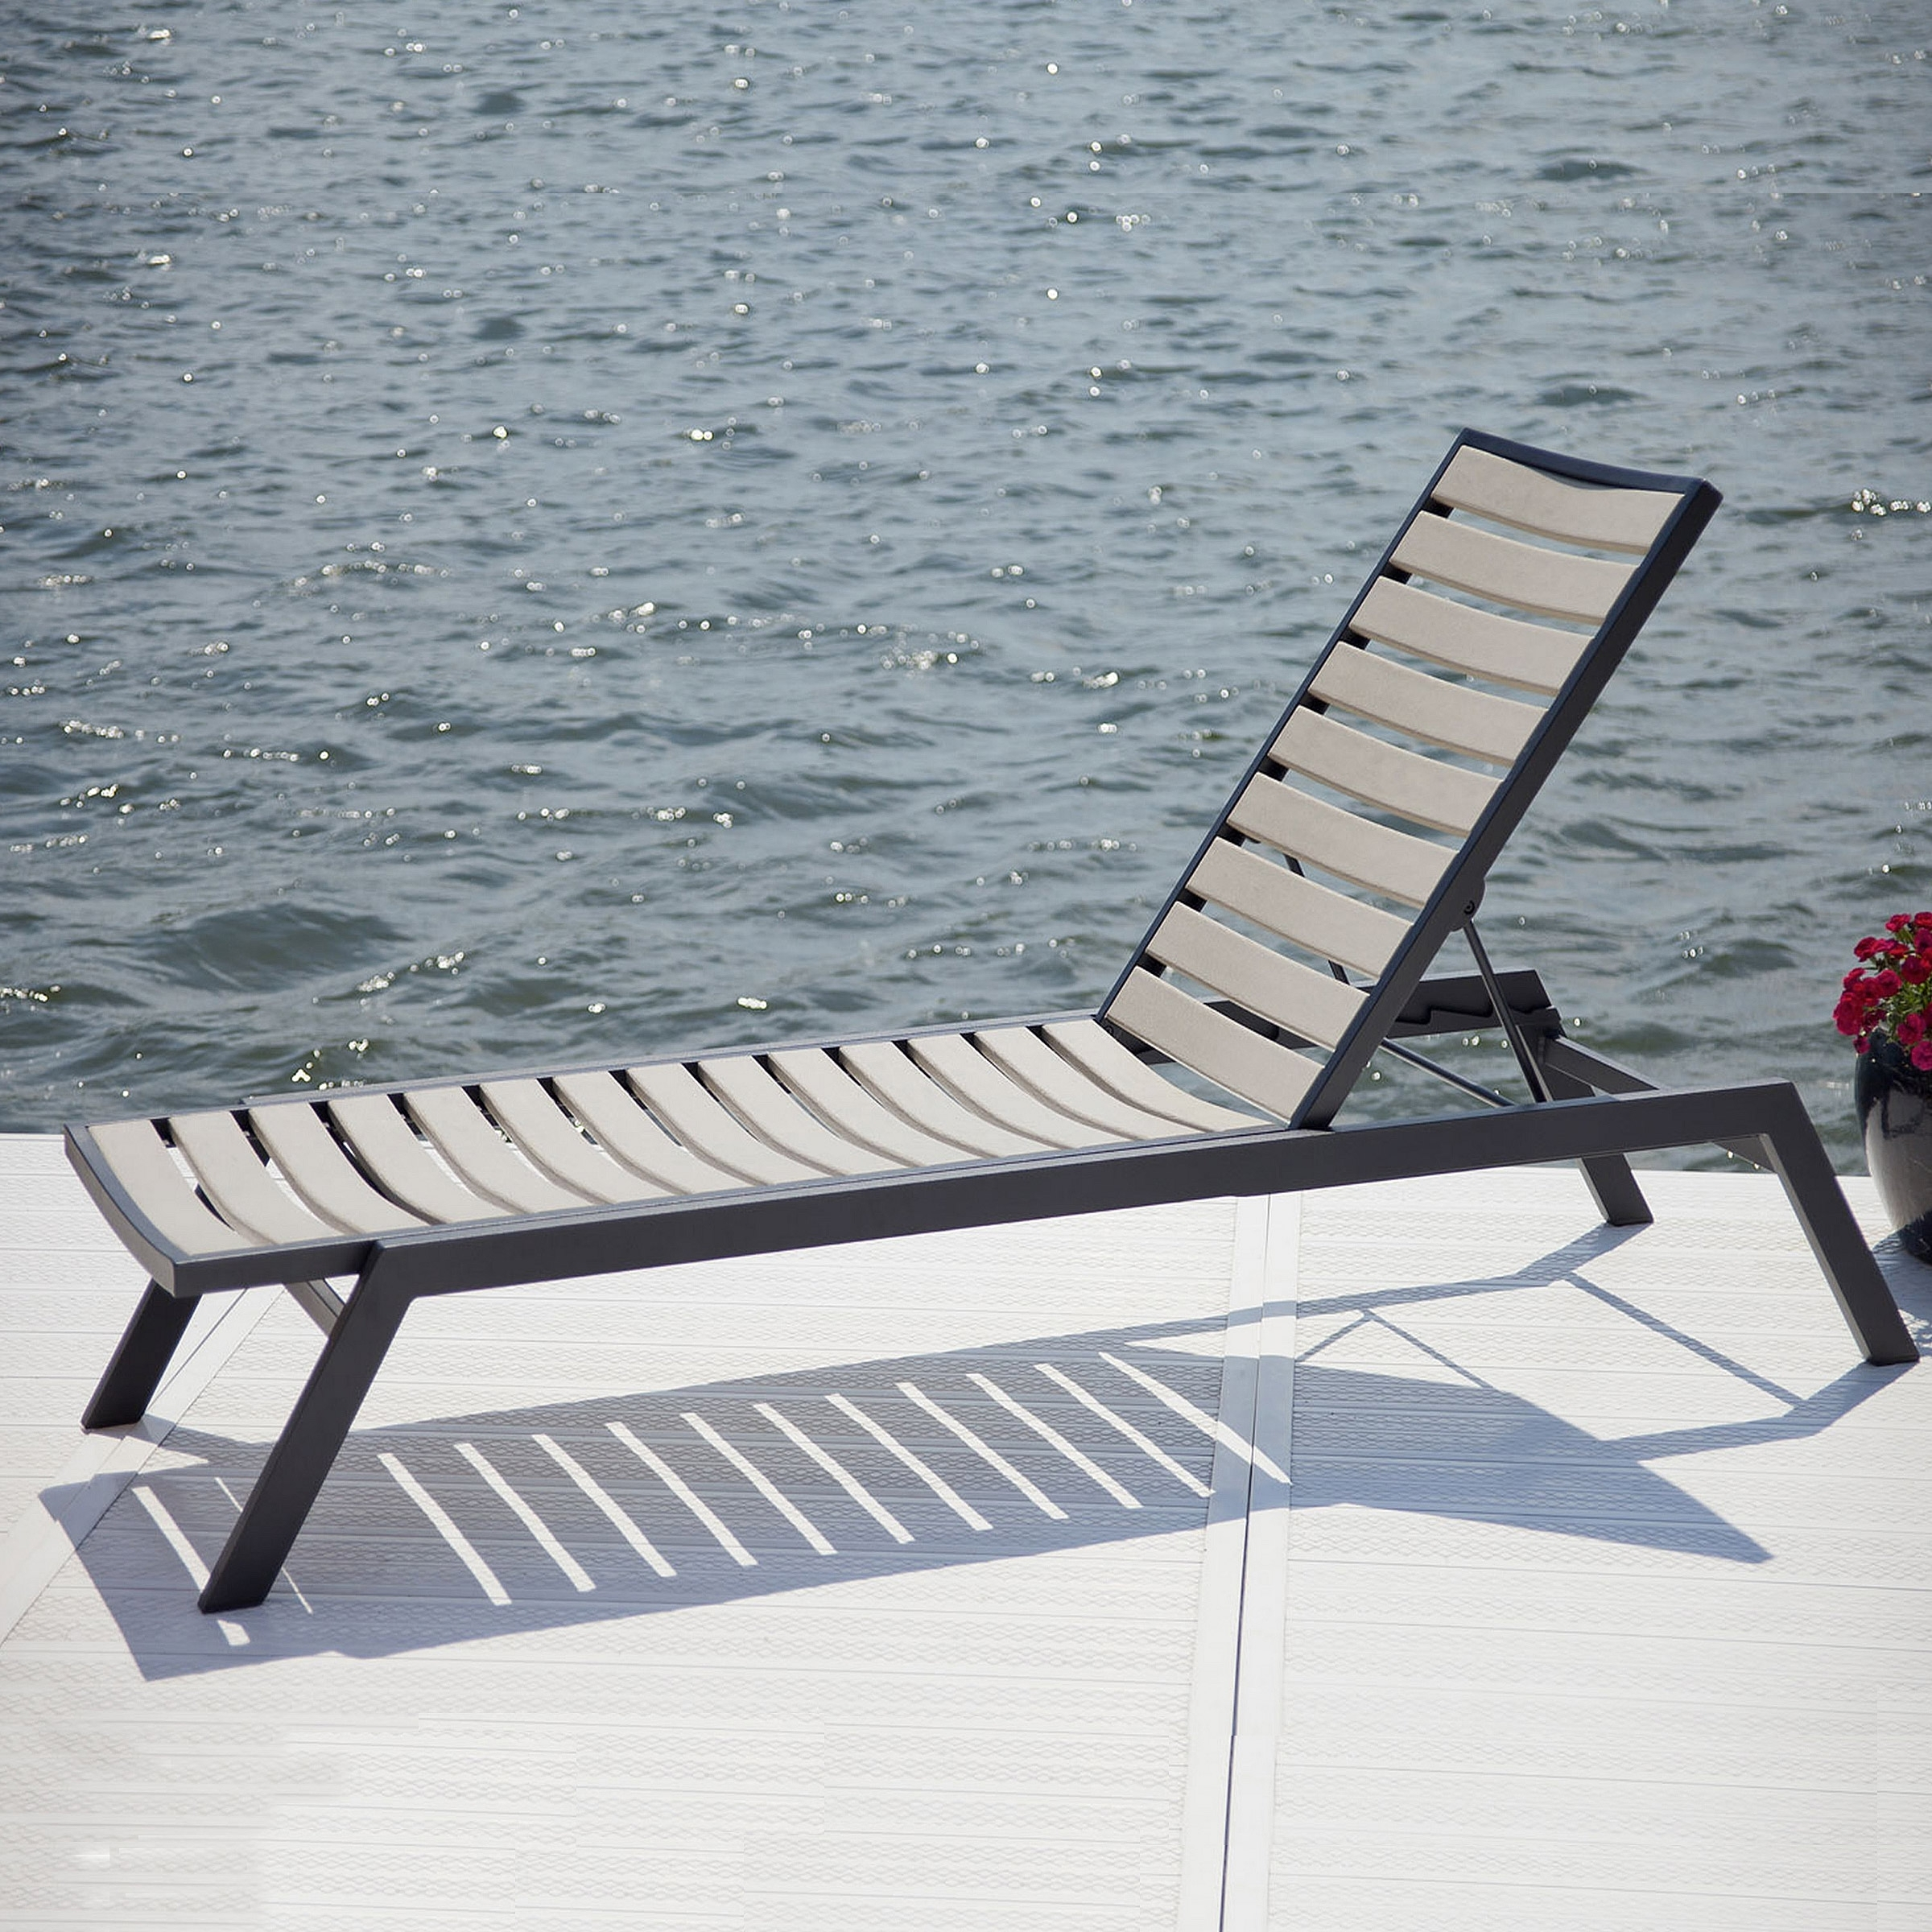 Widely Used Hotel Chaise Lounge Chairs Intended For Polywood Euro Chaise Lounge (View 3 of 15)